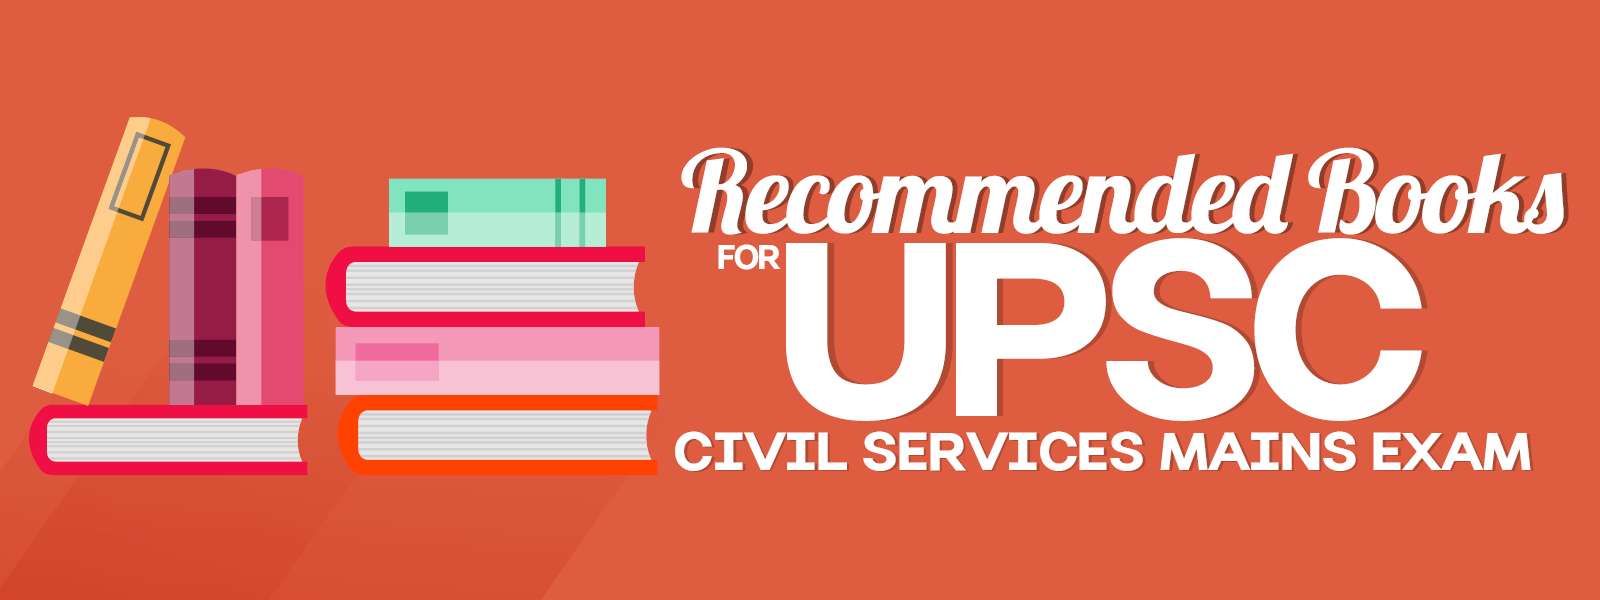 Recommended Books for UPSC Civil Services Mains Exam